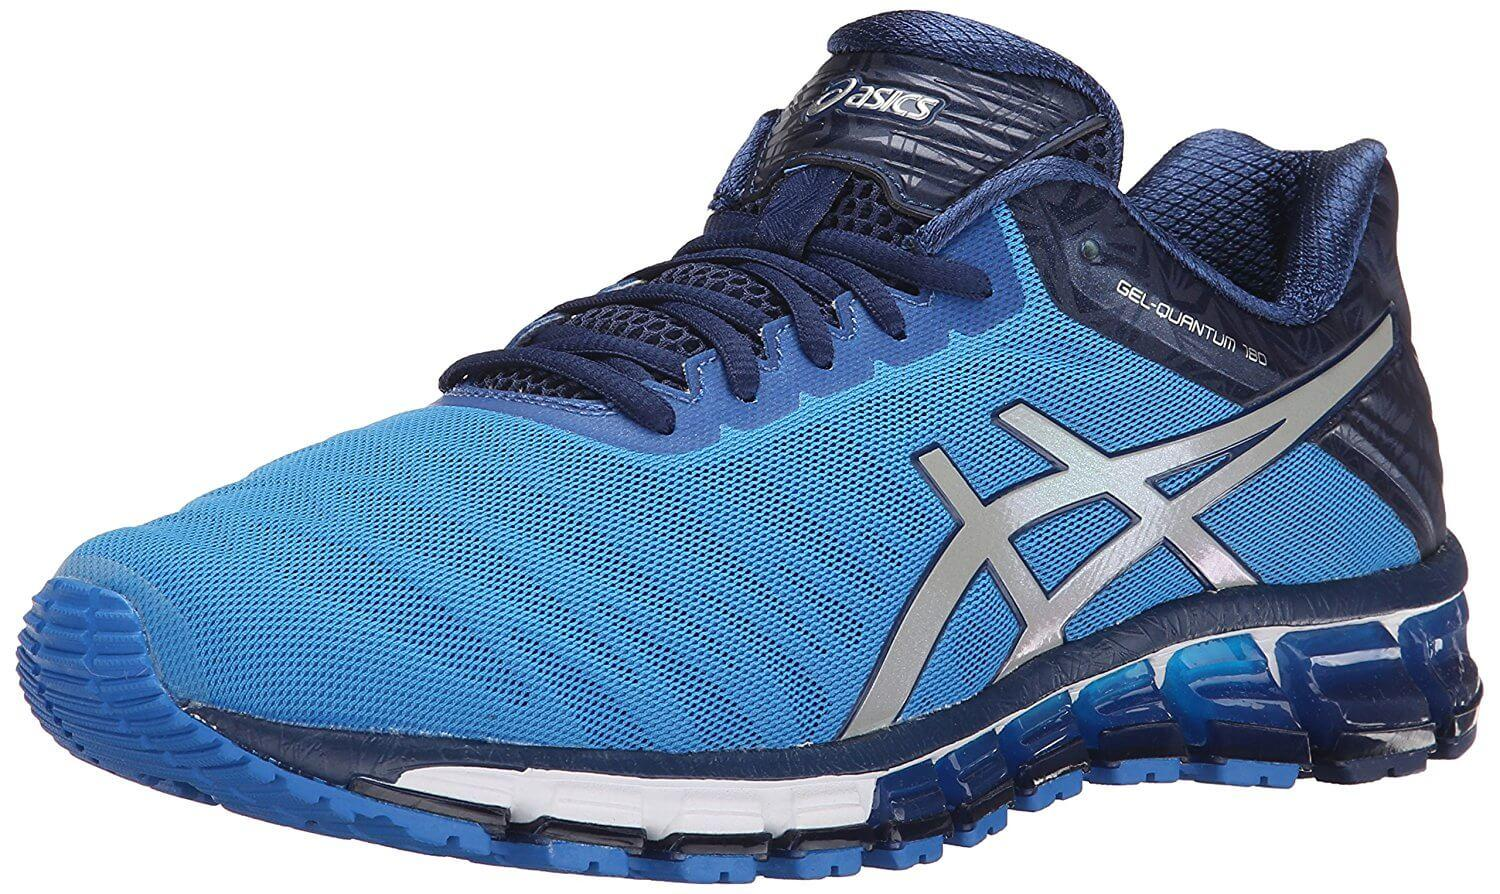 187d74e24e Asics Gel-Quantum 180 Review - Buy or Not in May 2019